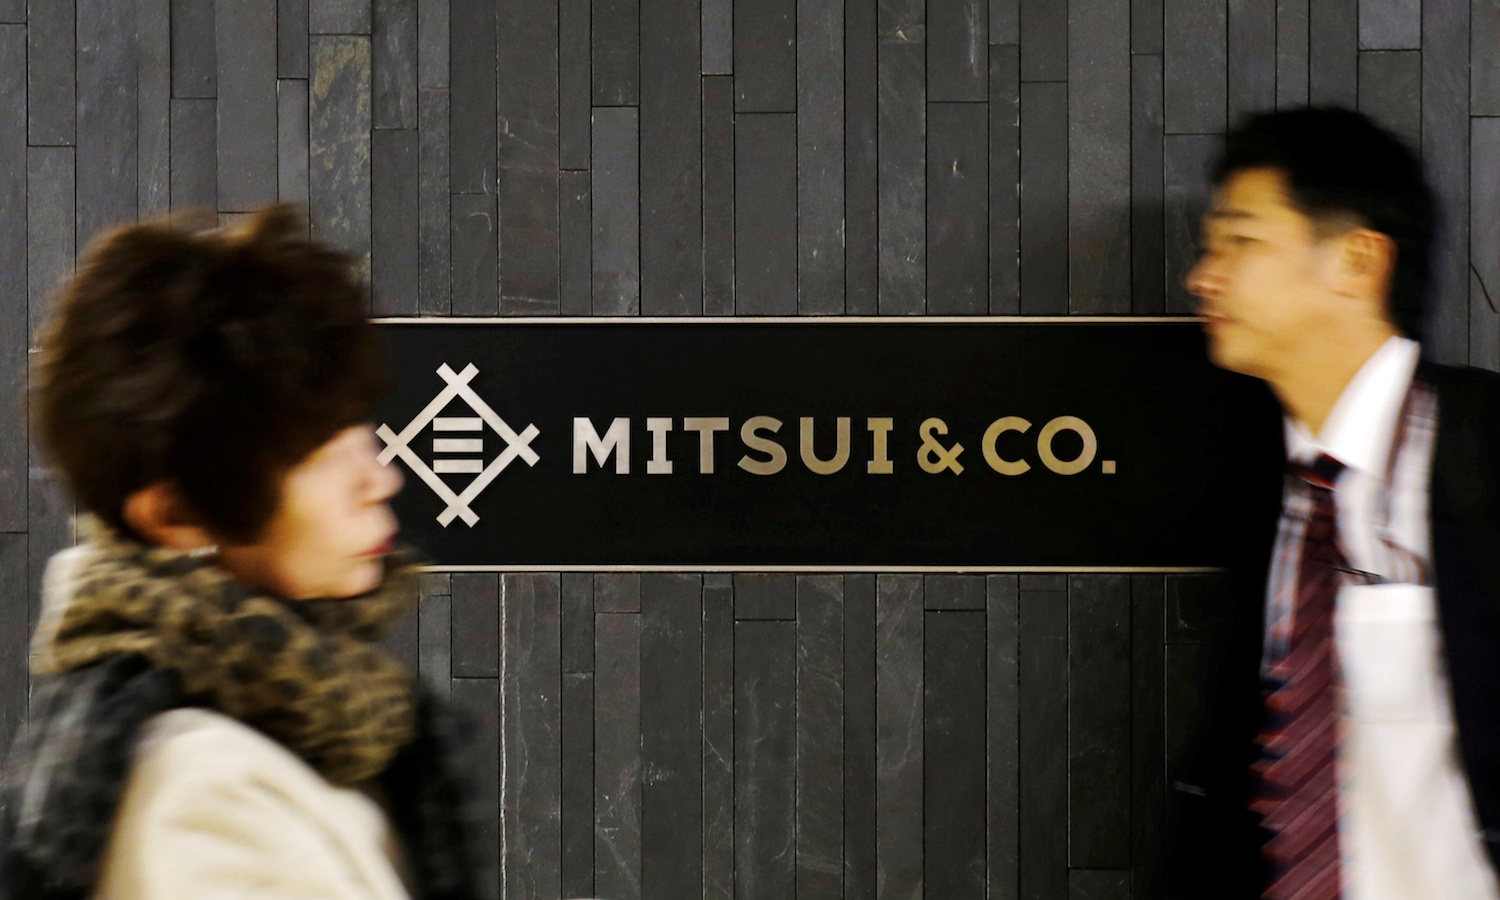 Mitsui to sell all stakes in coal-fired power plants by 2030